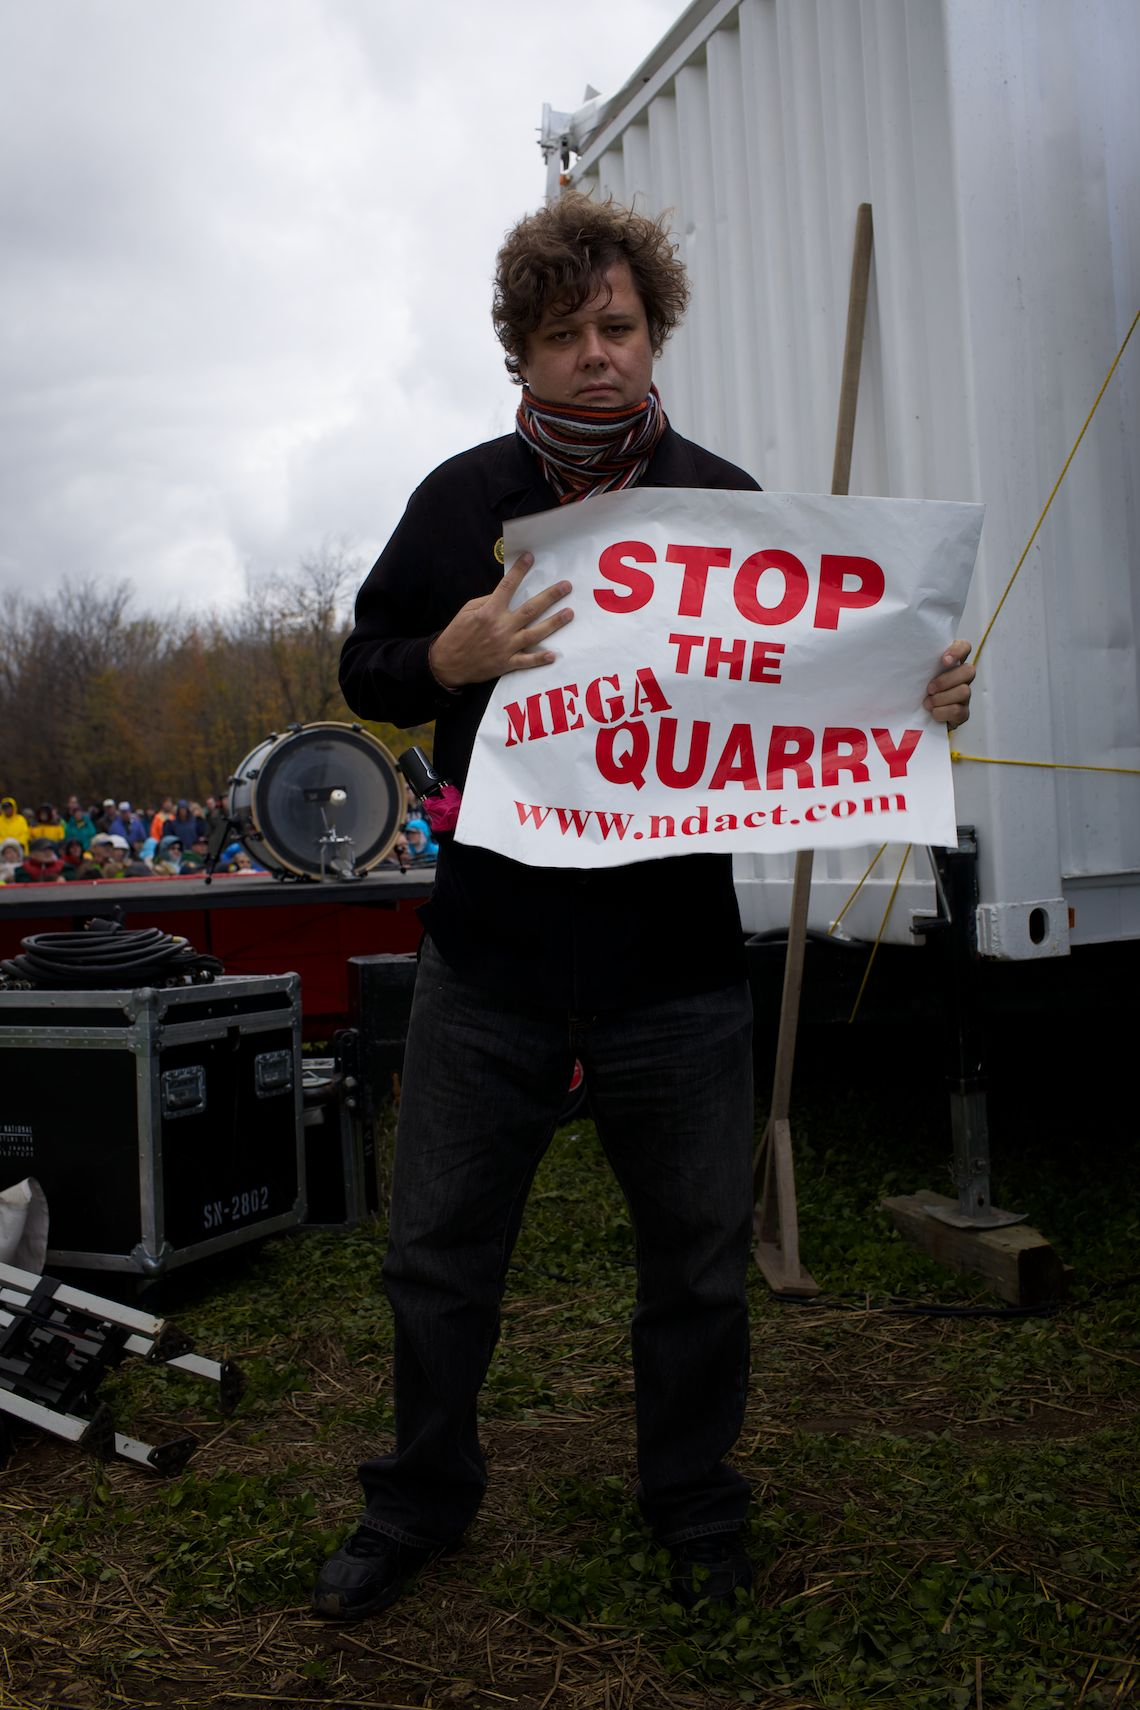 JasonvanBruggen.Nomegaquarry.0773.jpg